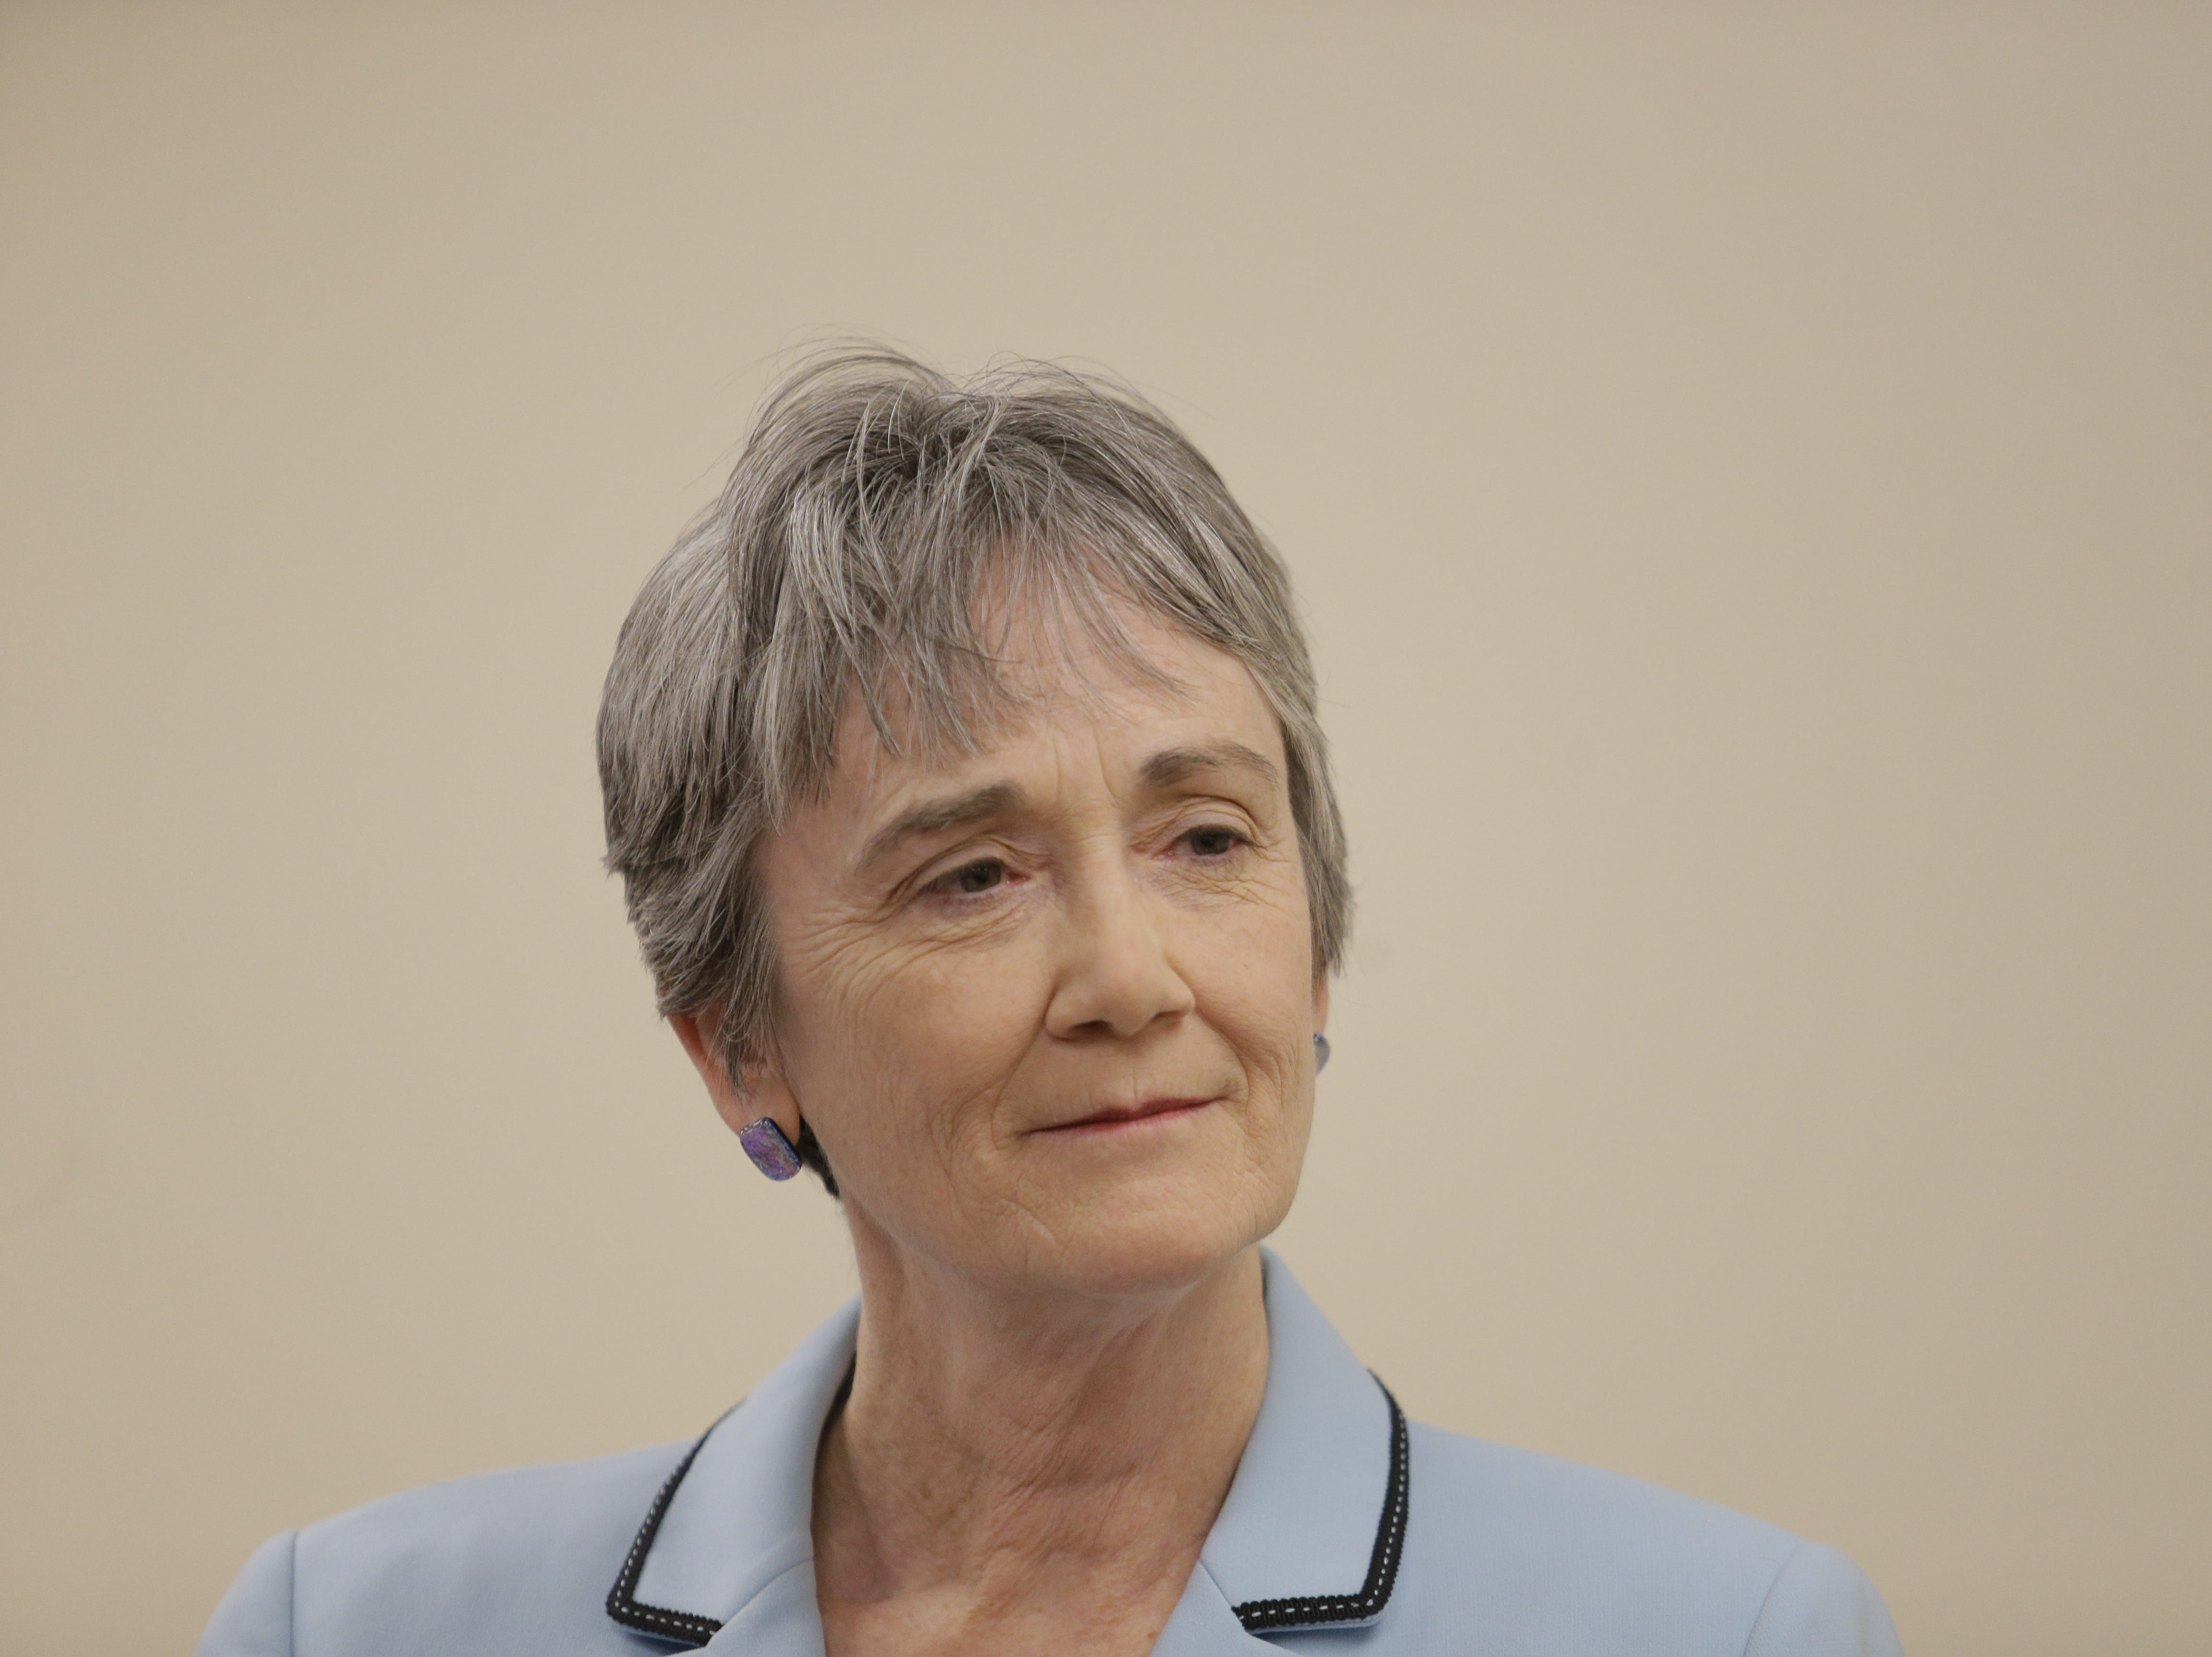 Heather Wilson, expected to be the next president of the University of Texas at El Paso, visited the campus on Monday morning.